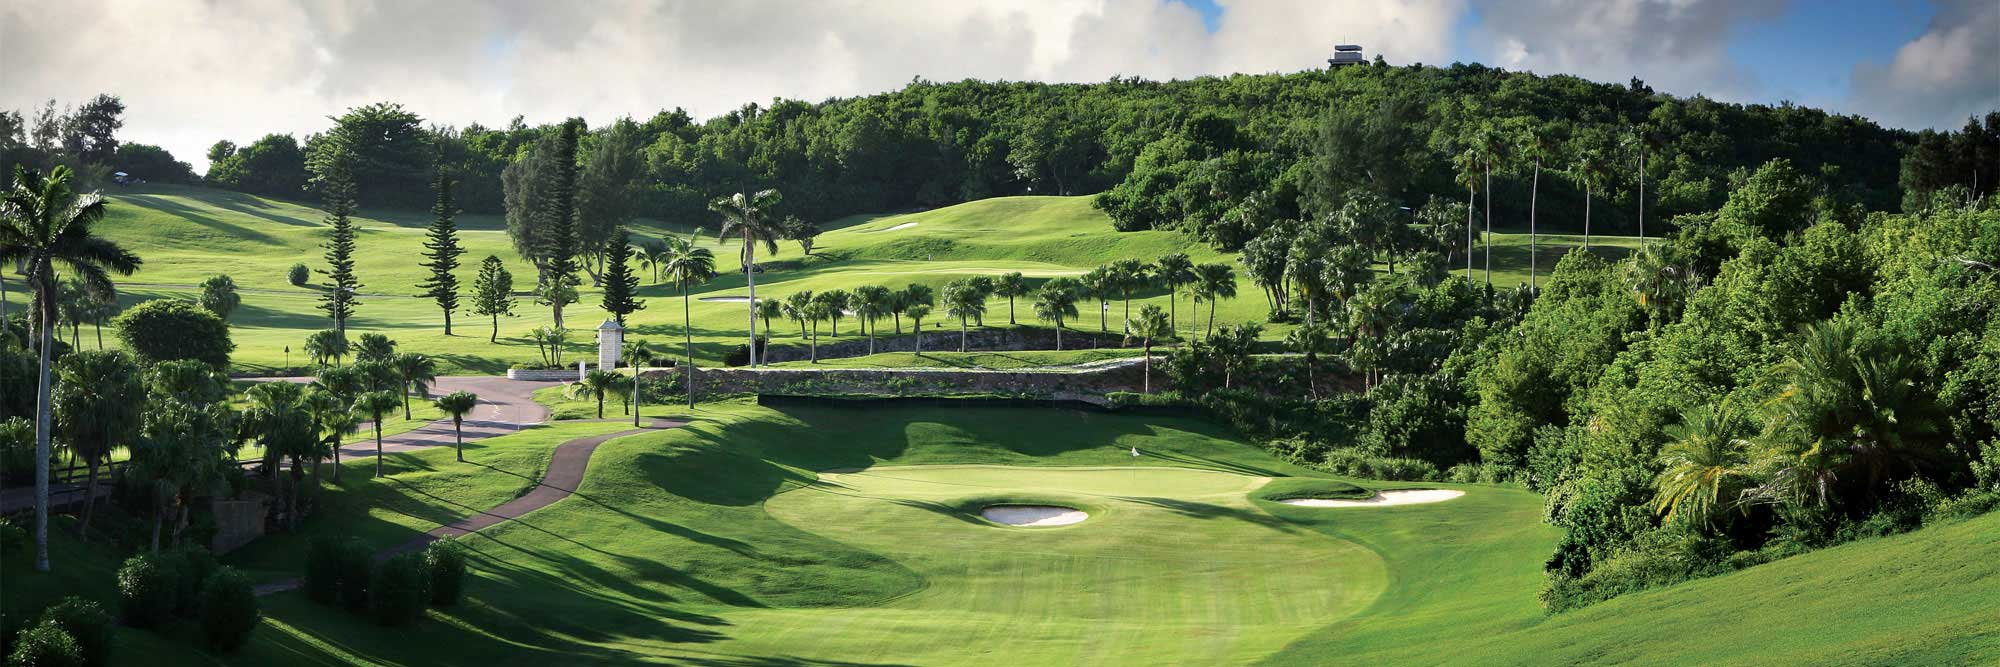 Bermuda Islands: Colors of Bermuda UNLIMITED GOLF Stay & Play with Coco Reef Beach Resort for $197 per day!